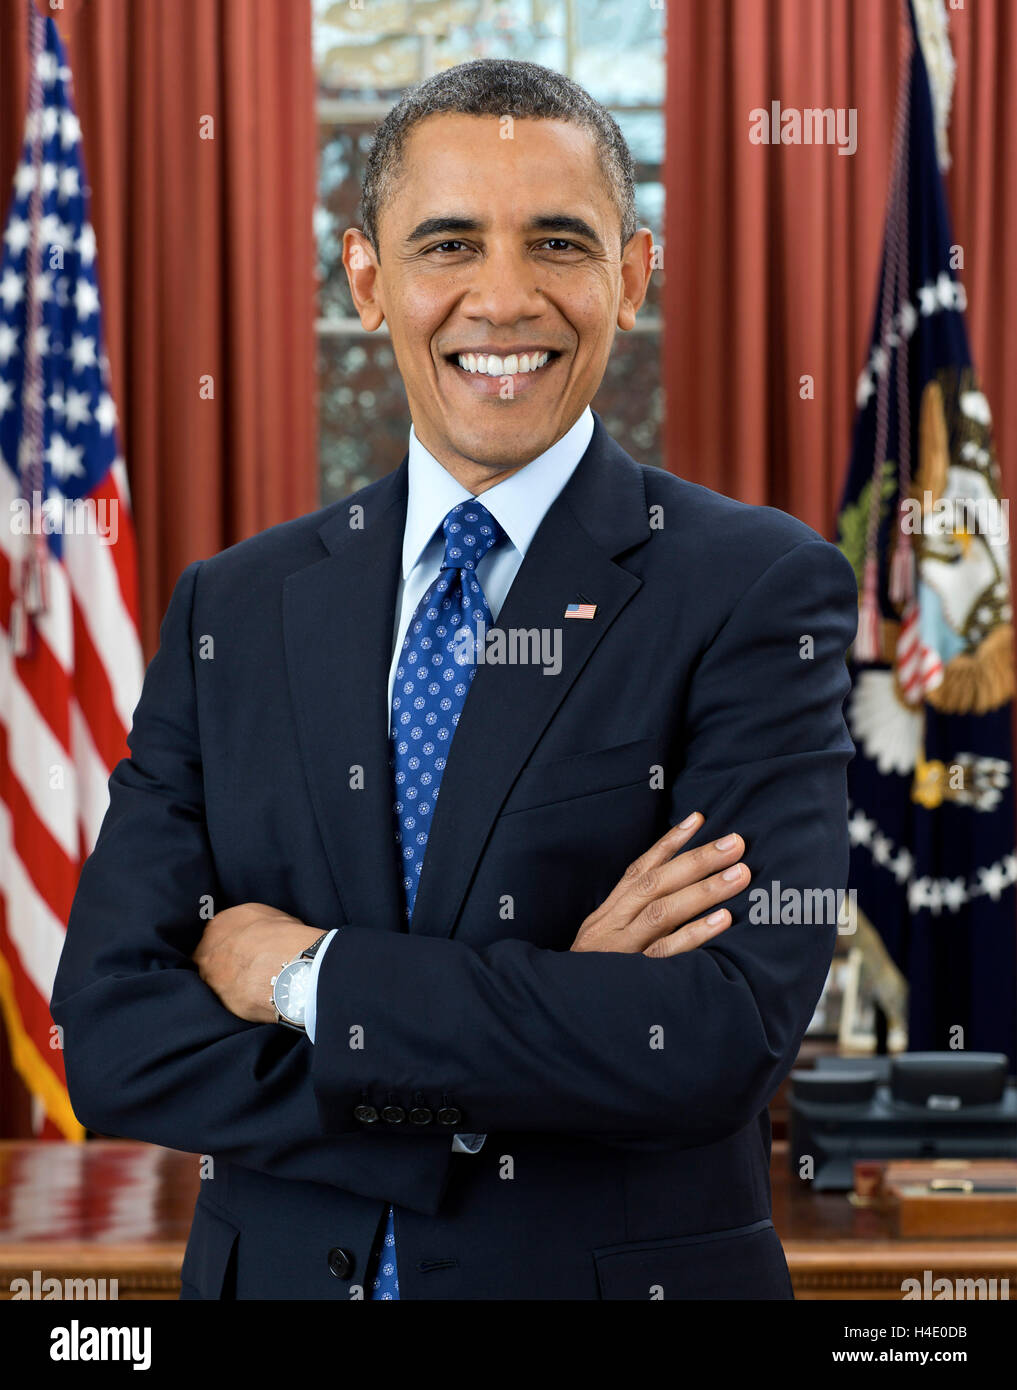 Barack Obama. Official White House portrait of Barack Obama, the 4th President of the USA, December 2012 - Stock Image